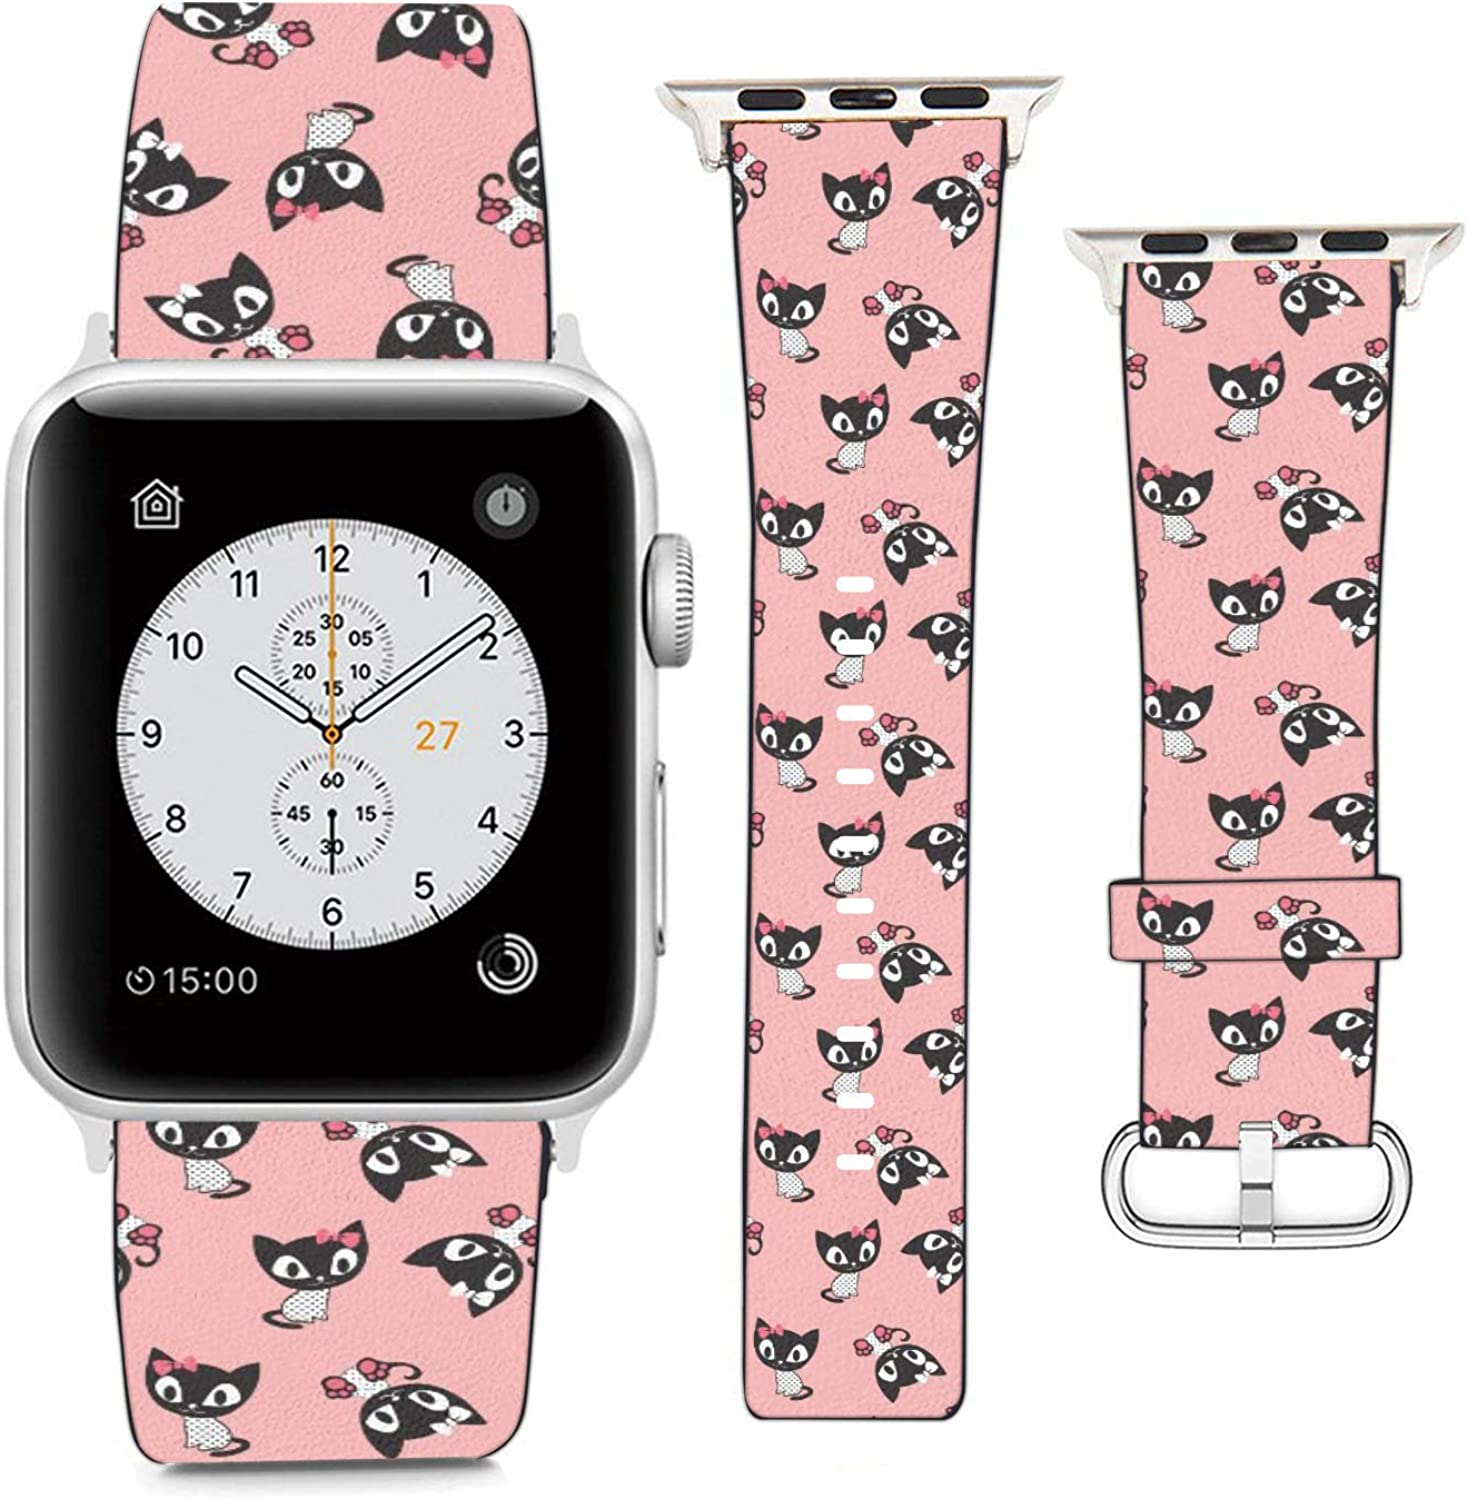 Compatible with Apple Watch Wristband 38mm 40mm, (Cartoon Kitten Cats) PU Leather Band Replacement Strap for iWatch Series 5 4 3 2 1